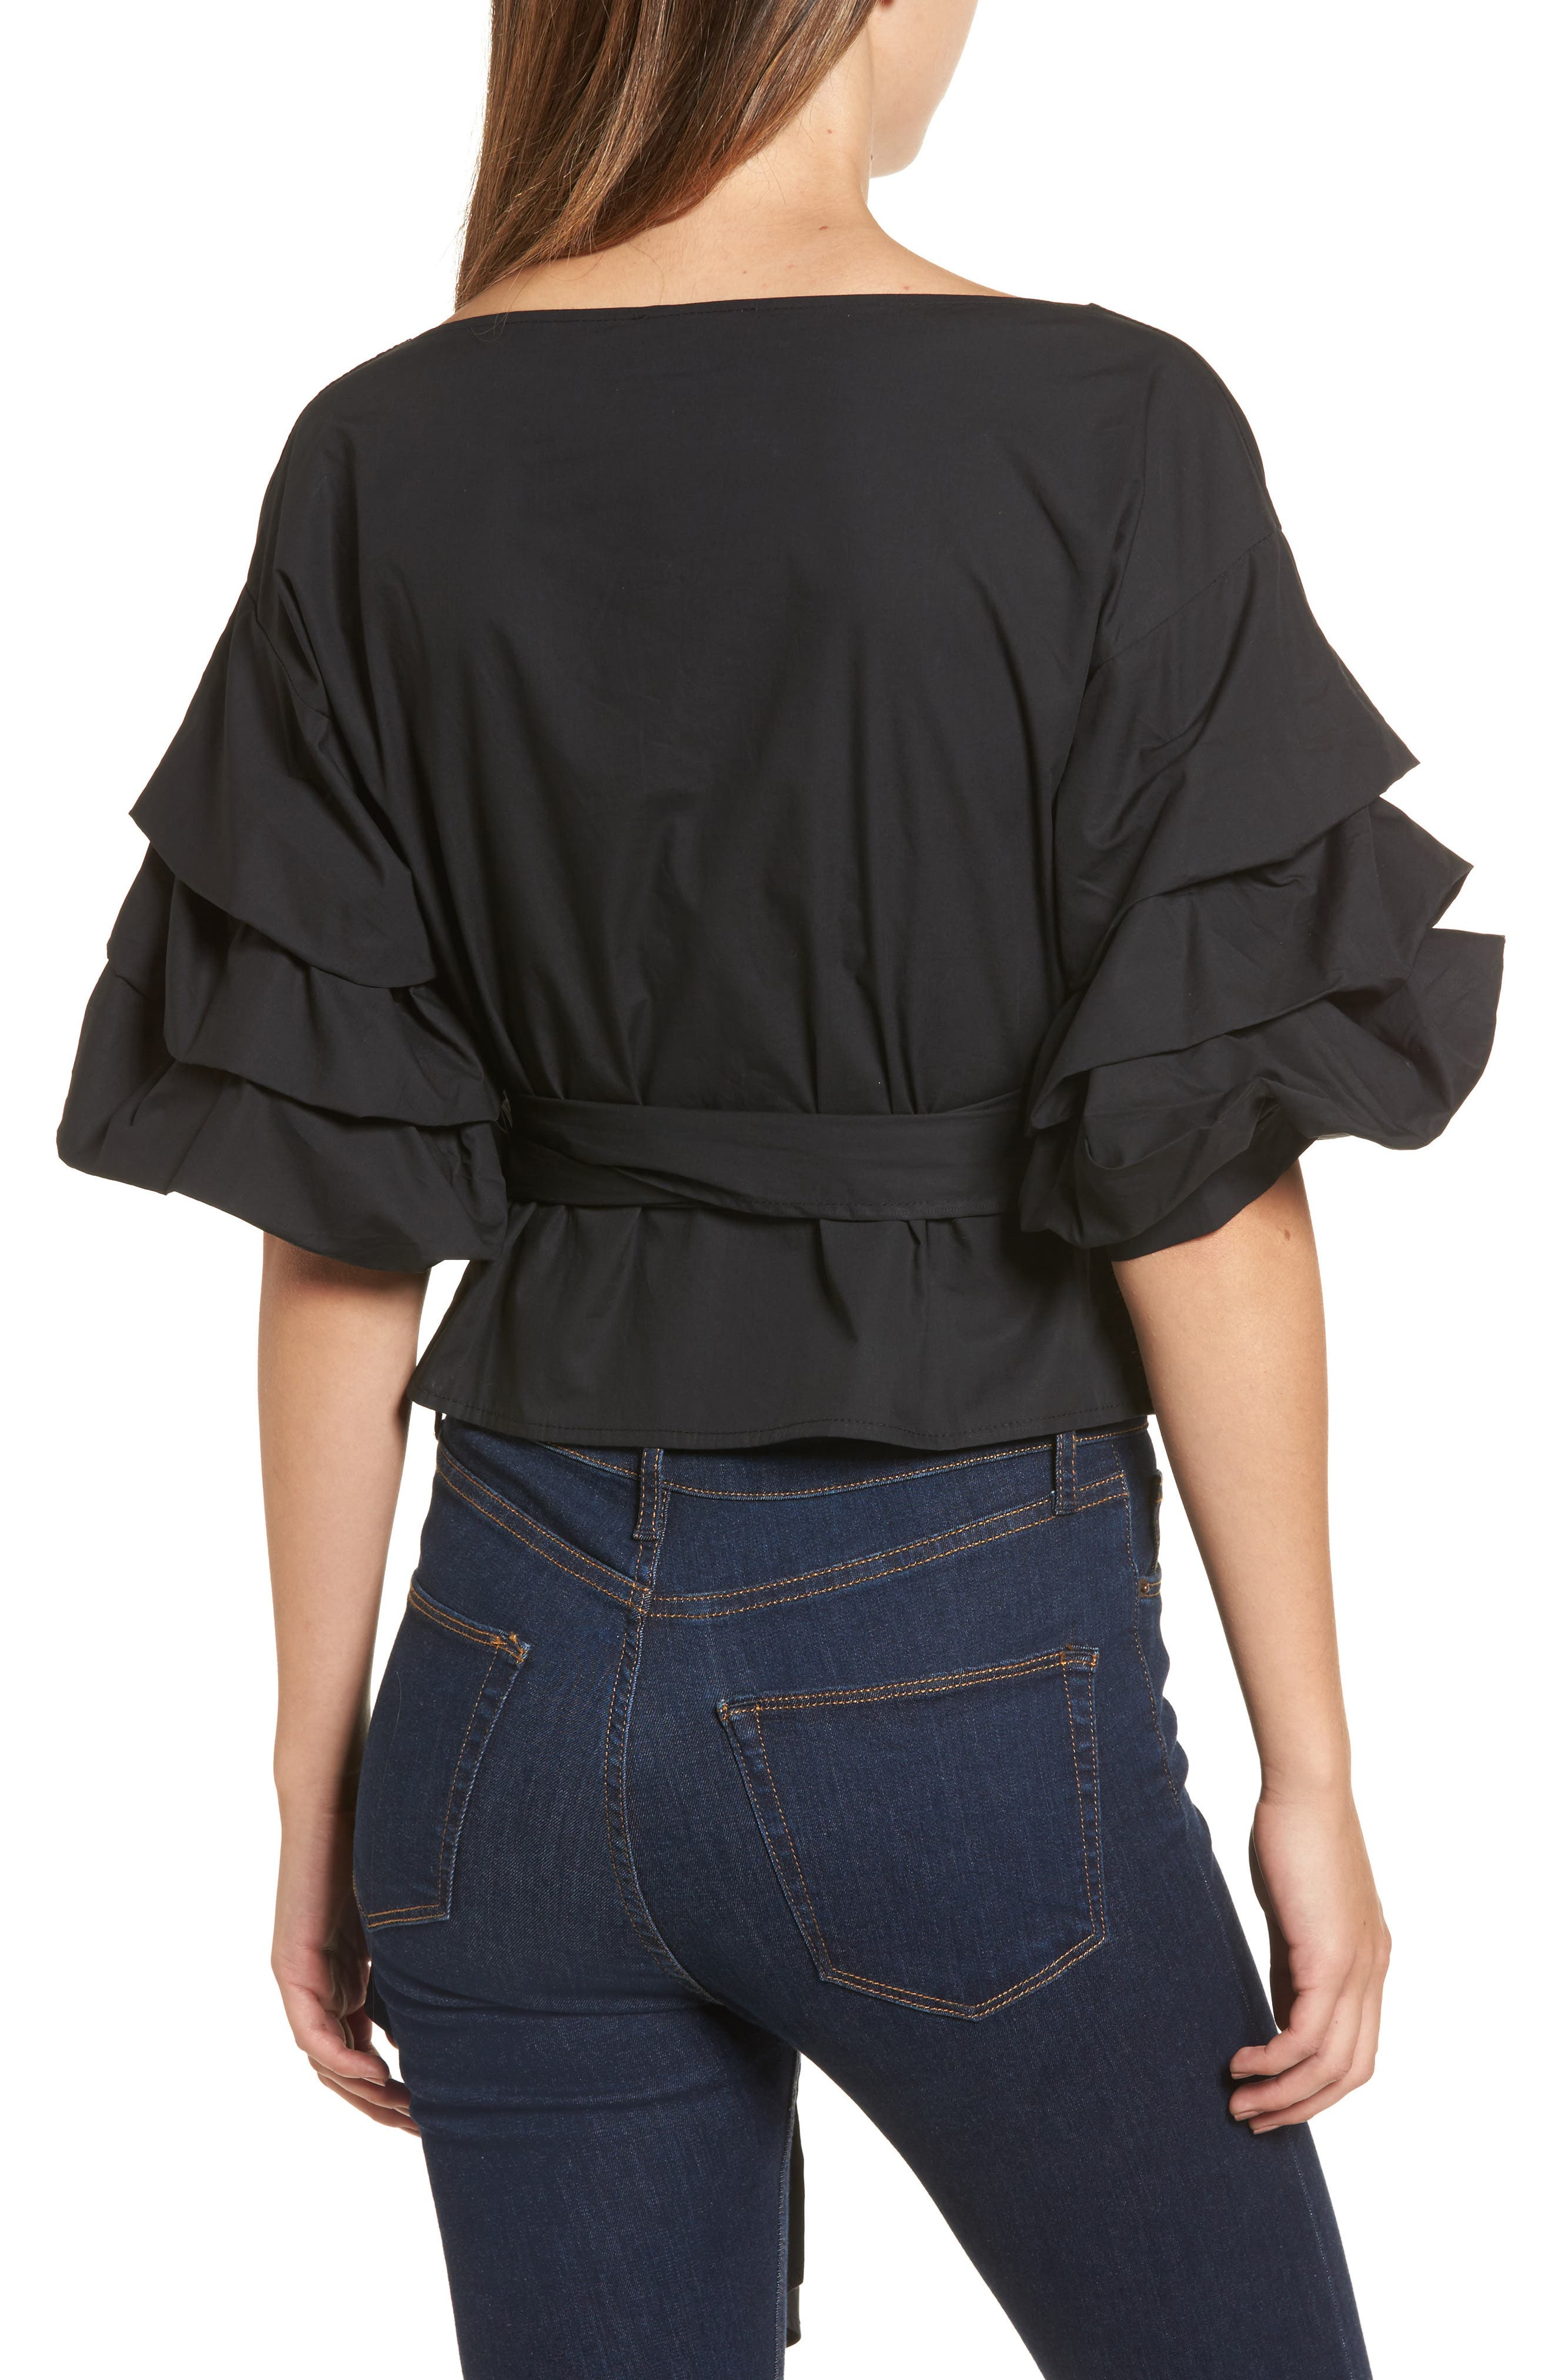 Esmerelda Wrap Top,                             Alternate thumbnail 2, color,                             Black